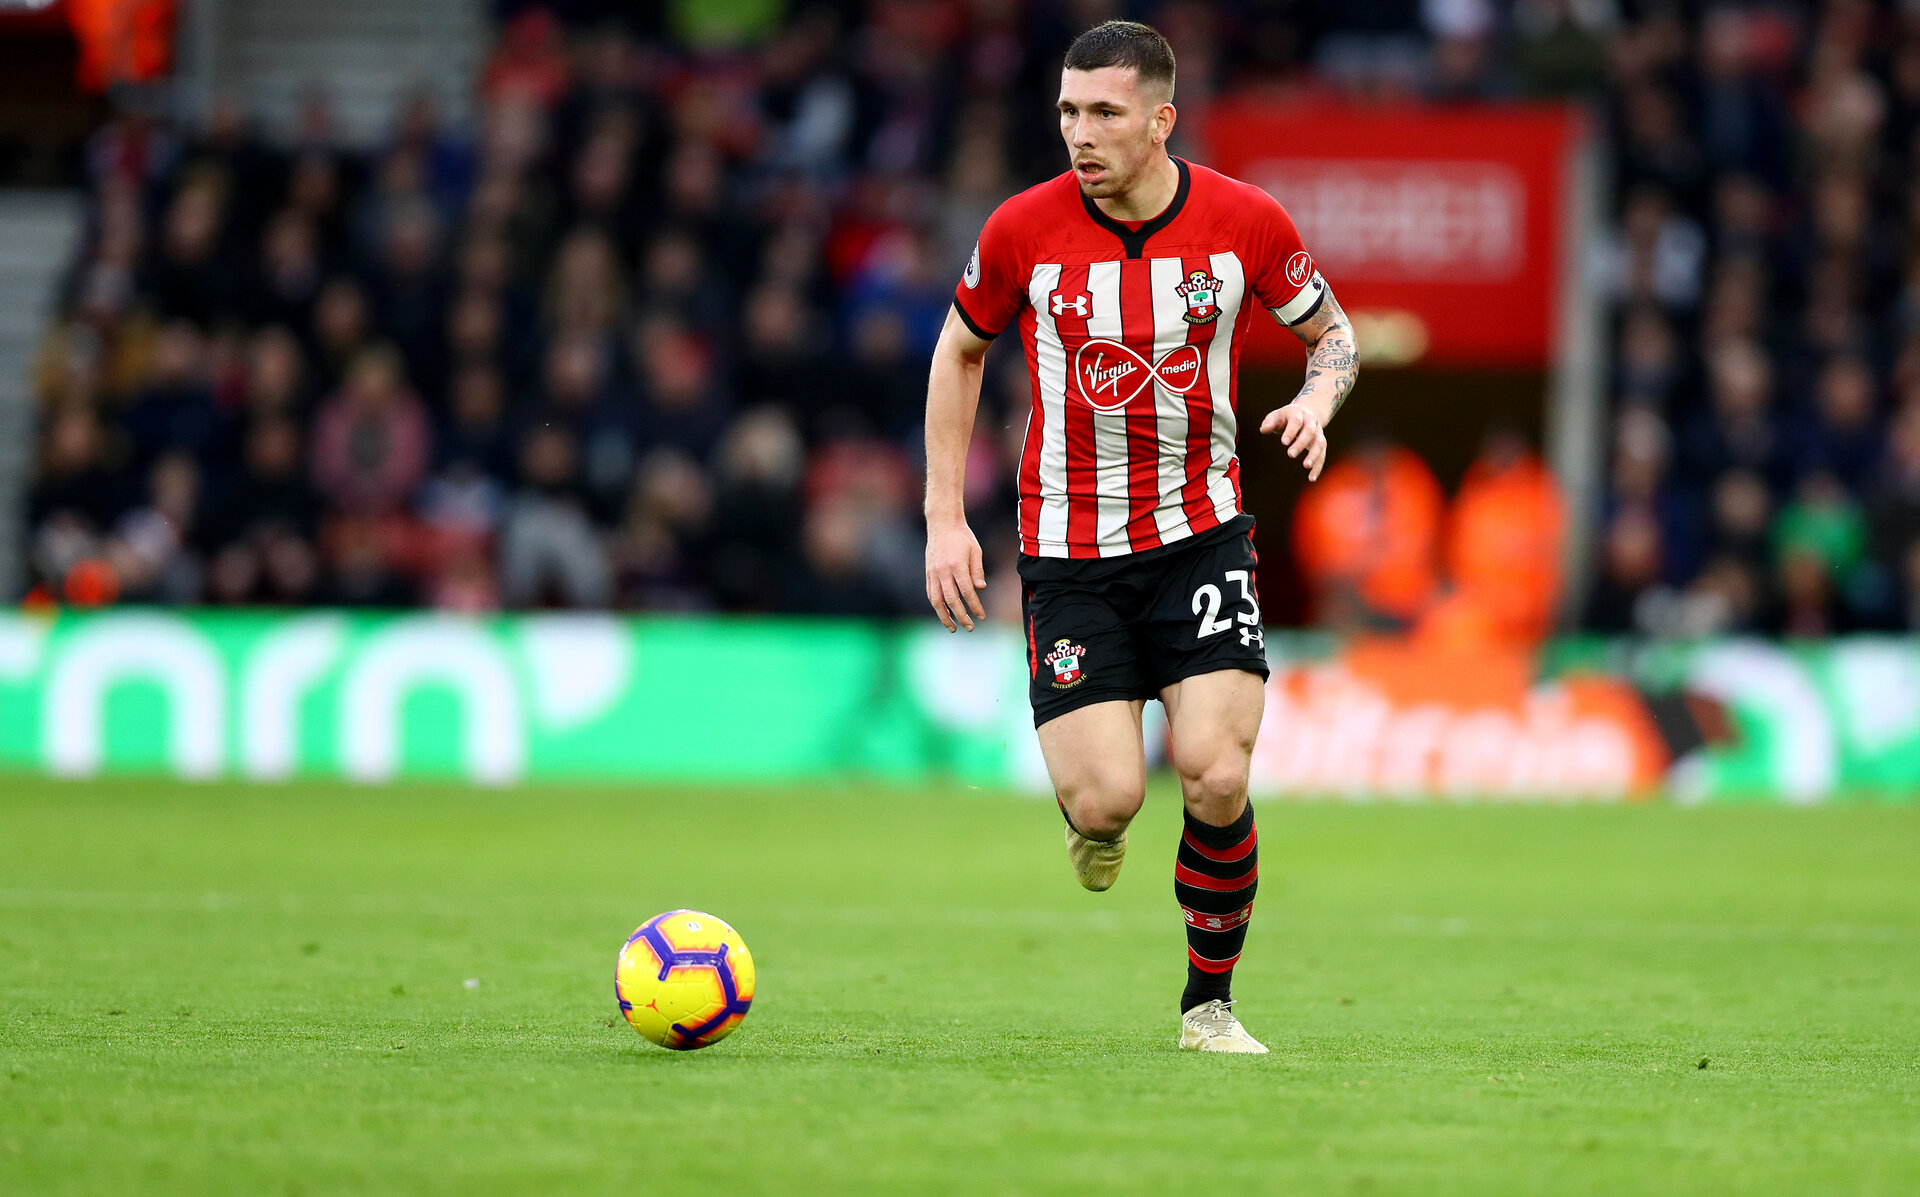 SOUTHAMPTON, ENGLAND - DECEMBER 30:  Pierre-Emile Hojbjerg during the Premier League match between Southampton FC and Manchester City at St Mary's Stadium on December 30, 2018 in Southampton, United Kingdom. (Photo by Matt Watson/Southampton FC via Getty Images)